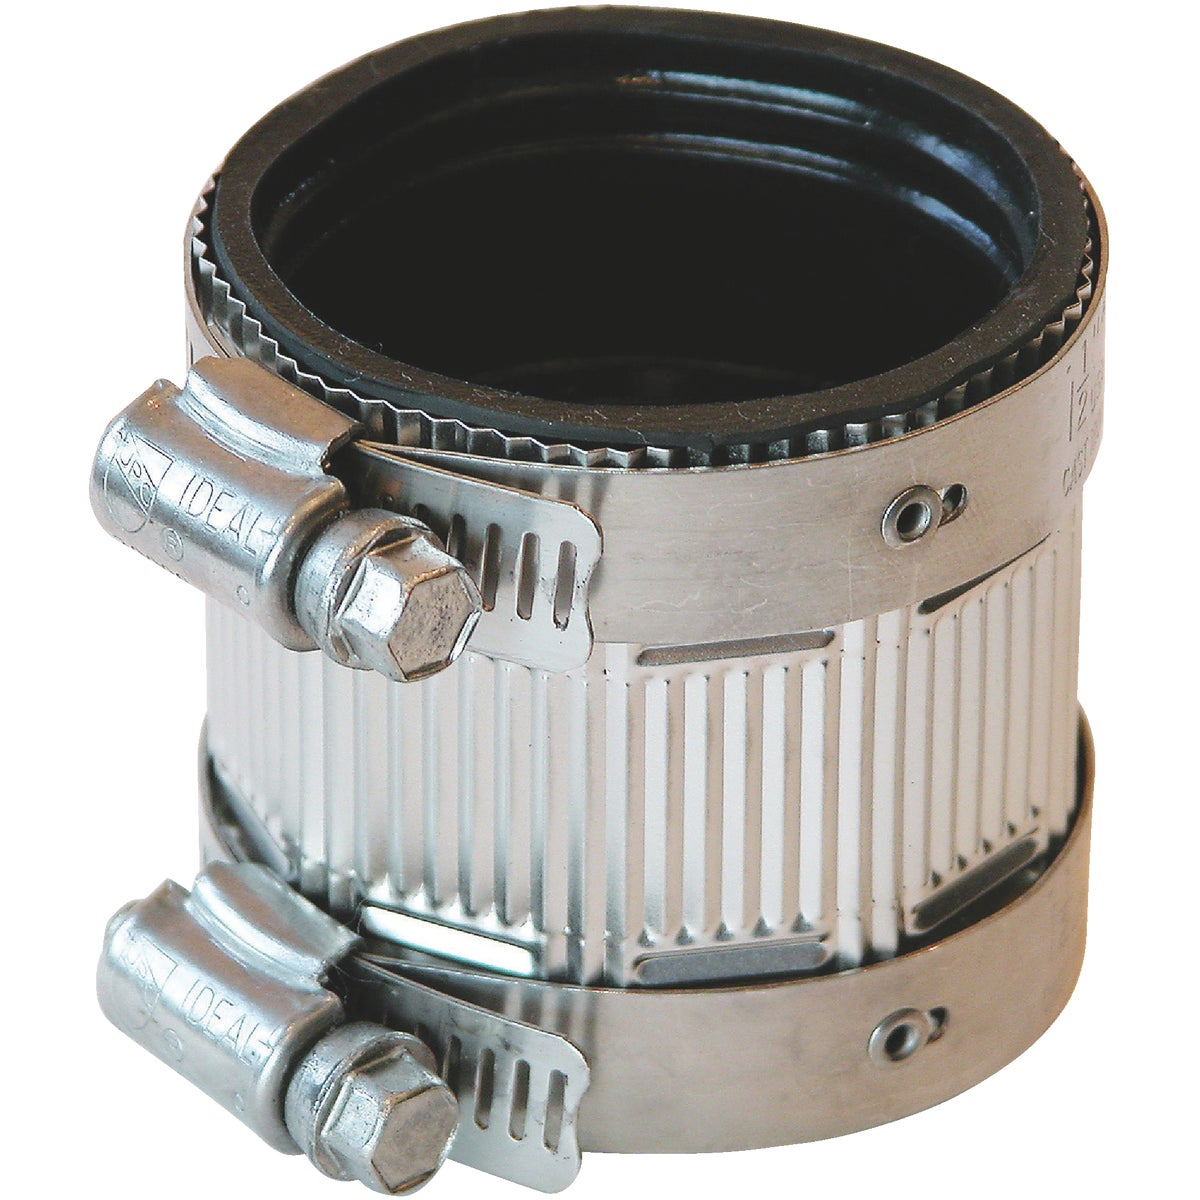 "2X1-1/2"" NO-HUB COUPLING - PNH-215 by Fernco Inc"